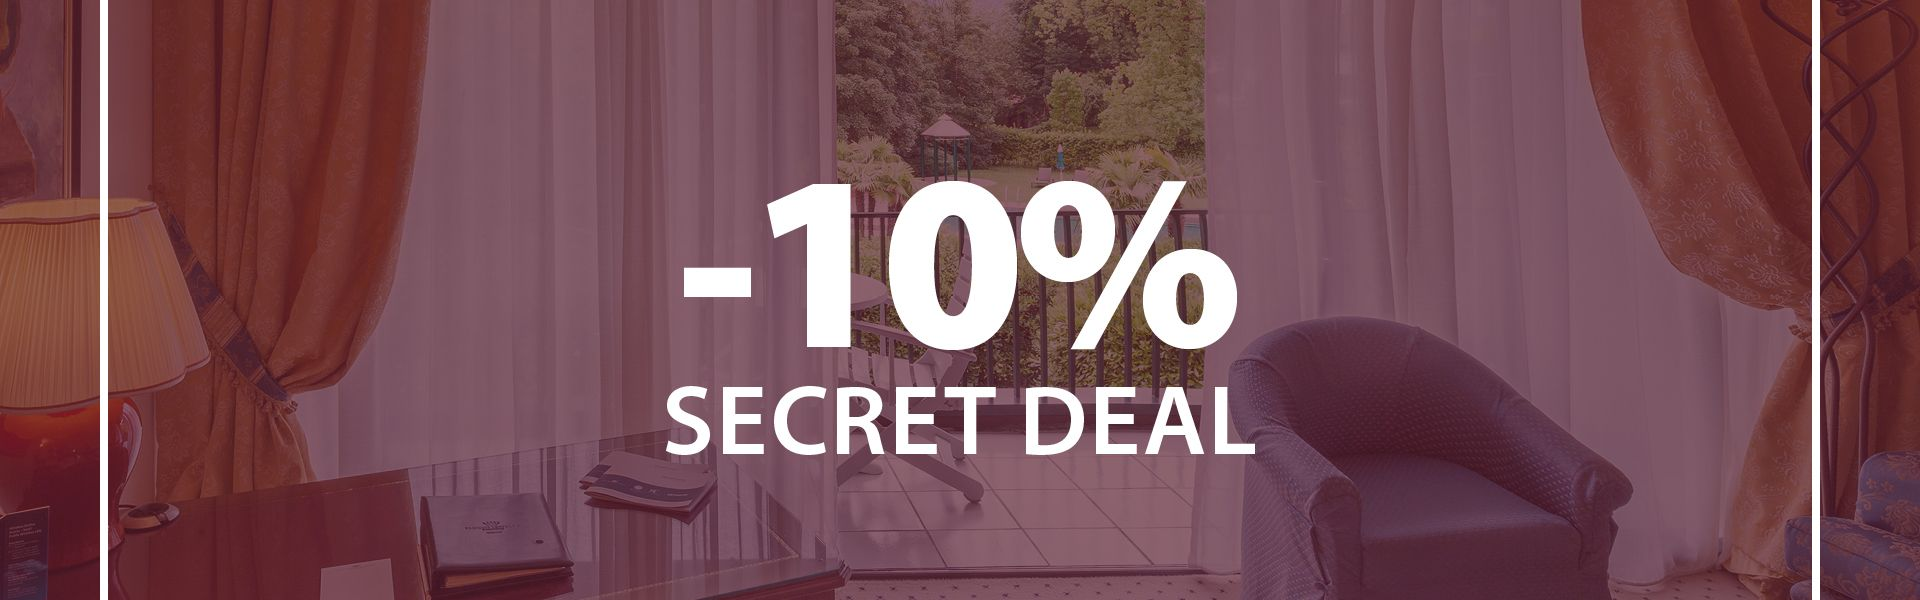 Secredt Deal 2